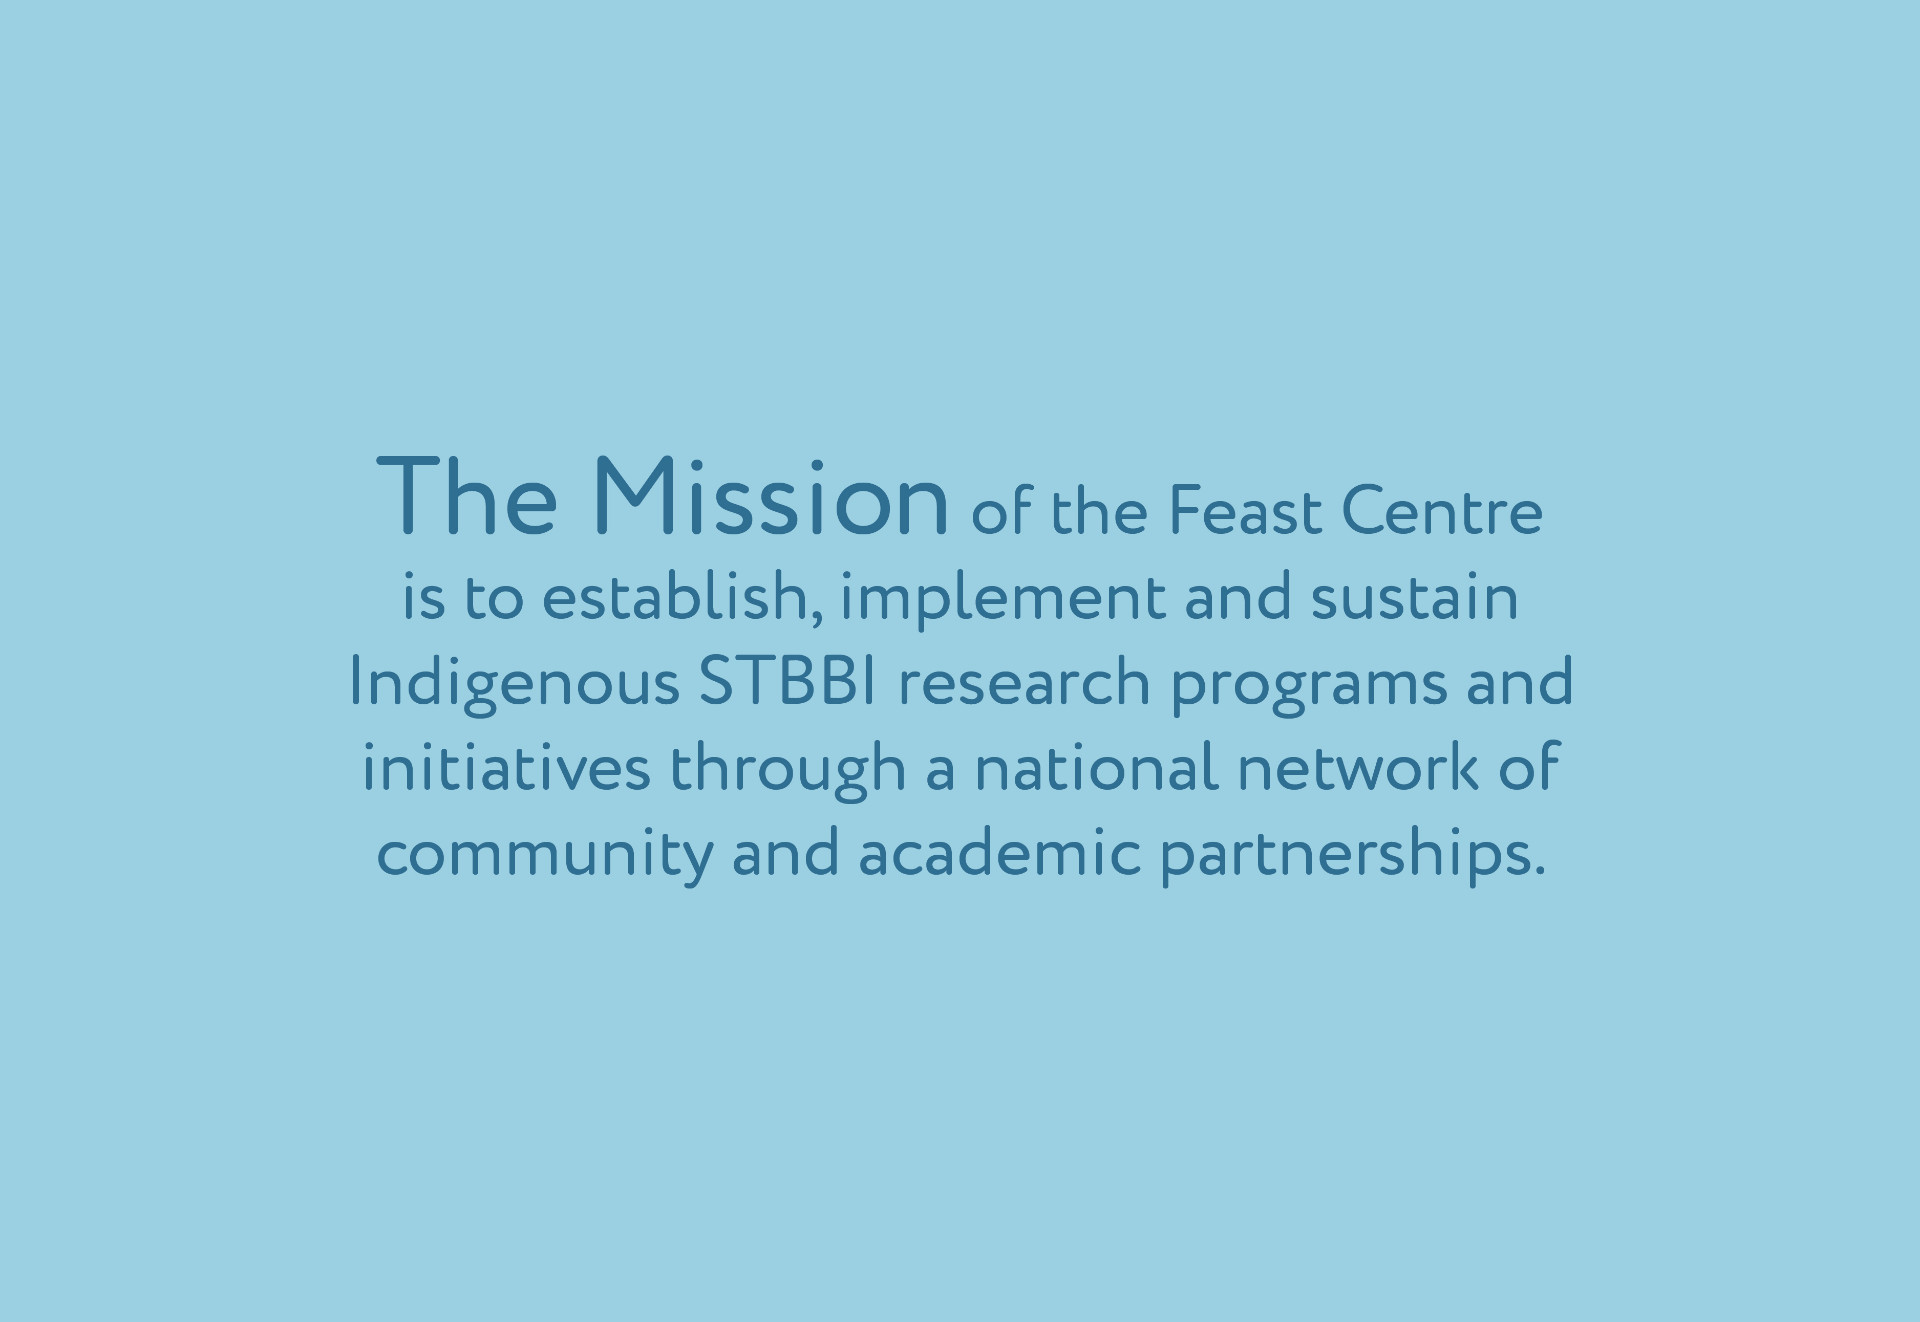 Our Mission The mission of the Feast Centre is to establish, implement, and sustain strategic research programs and initiatives, through a national network with strong academic and community partnerships. A strengths-based approach—emphasizing multi-generational Indigenous (First Nations, Inuit and Métis) knowledge will be engaged to balance research around three priority areas of reducing vulnerability, improving quality of life, and increasing determinants of health for those living with or affected by STBBI. In support of this mission, the Feast Centre will actively and meaningfully engage stakeholders and partners across all Centre activities.